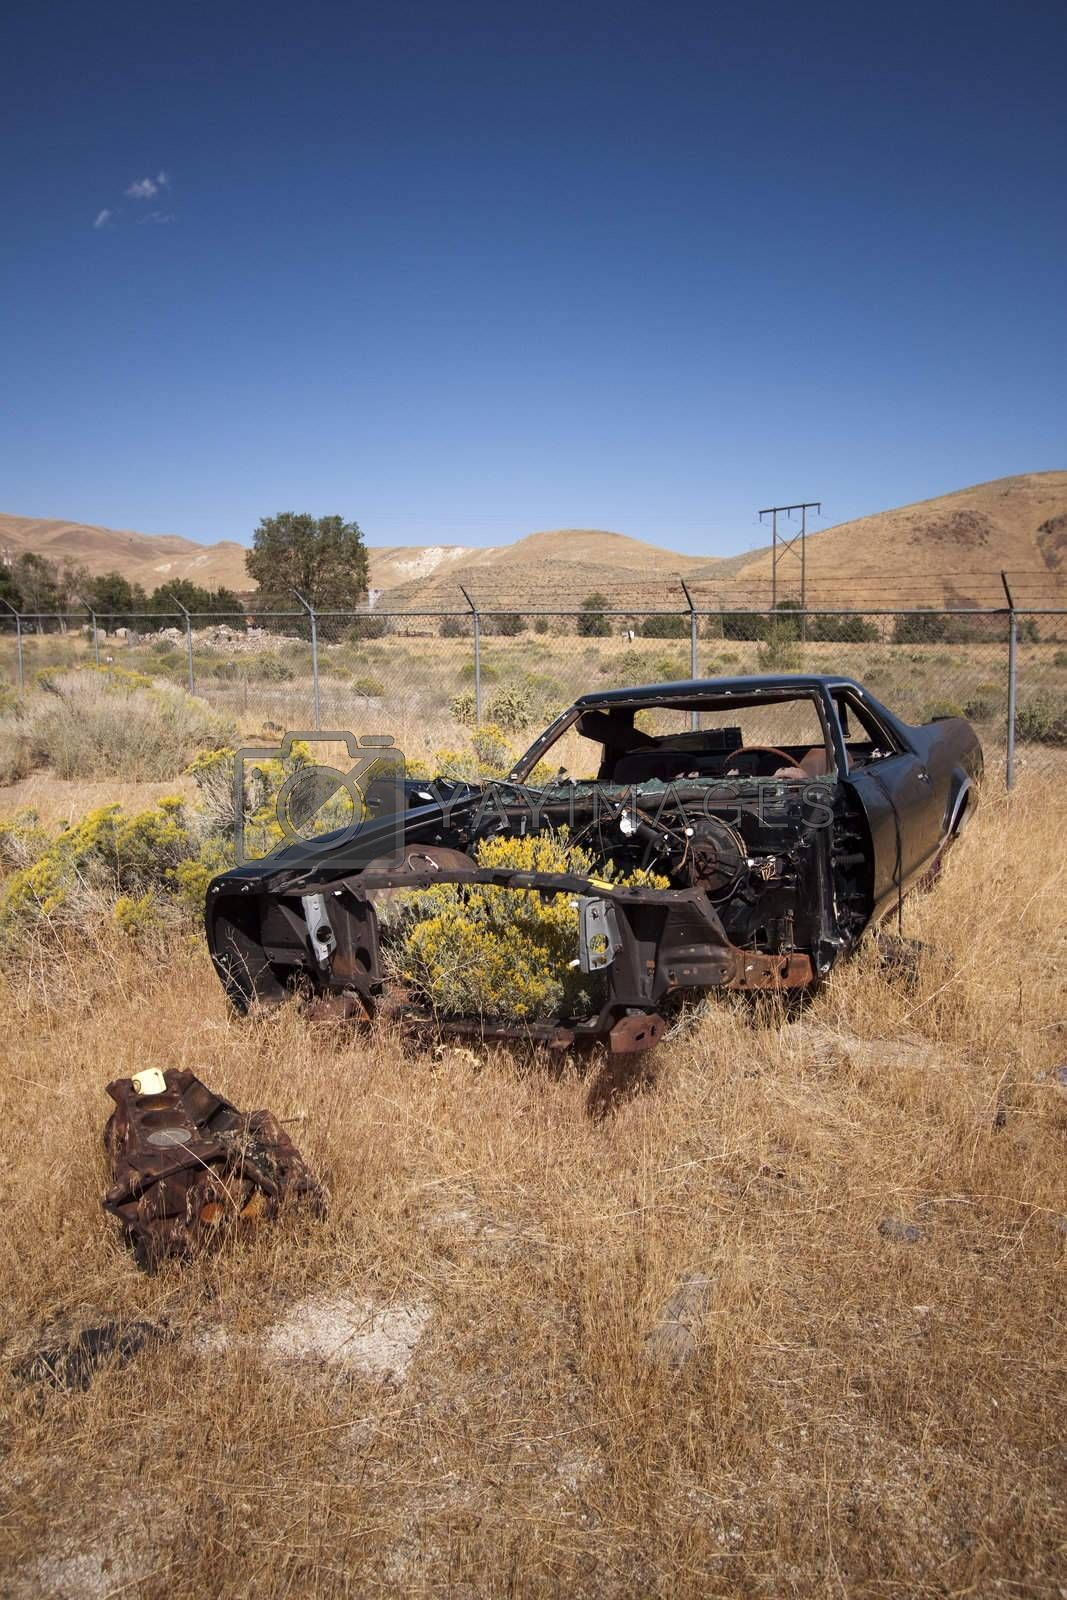 An old rusty abandoned car.